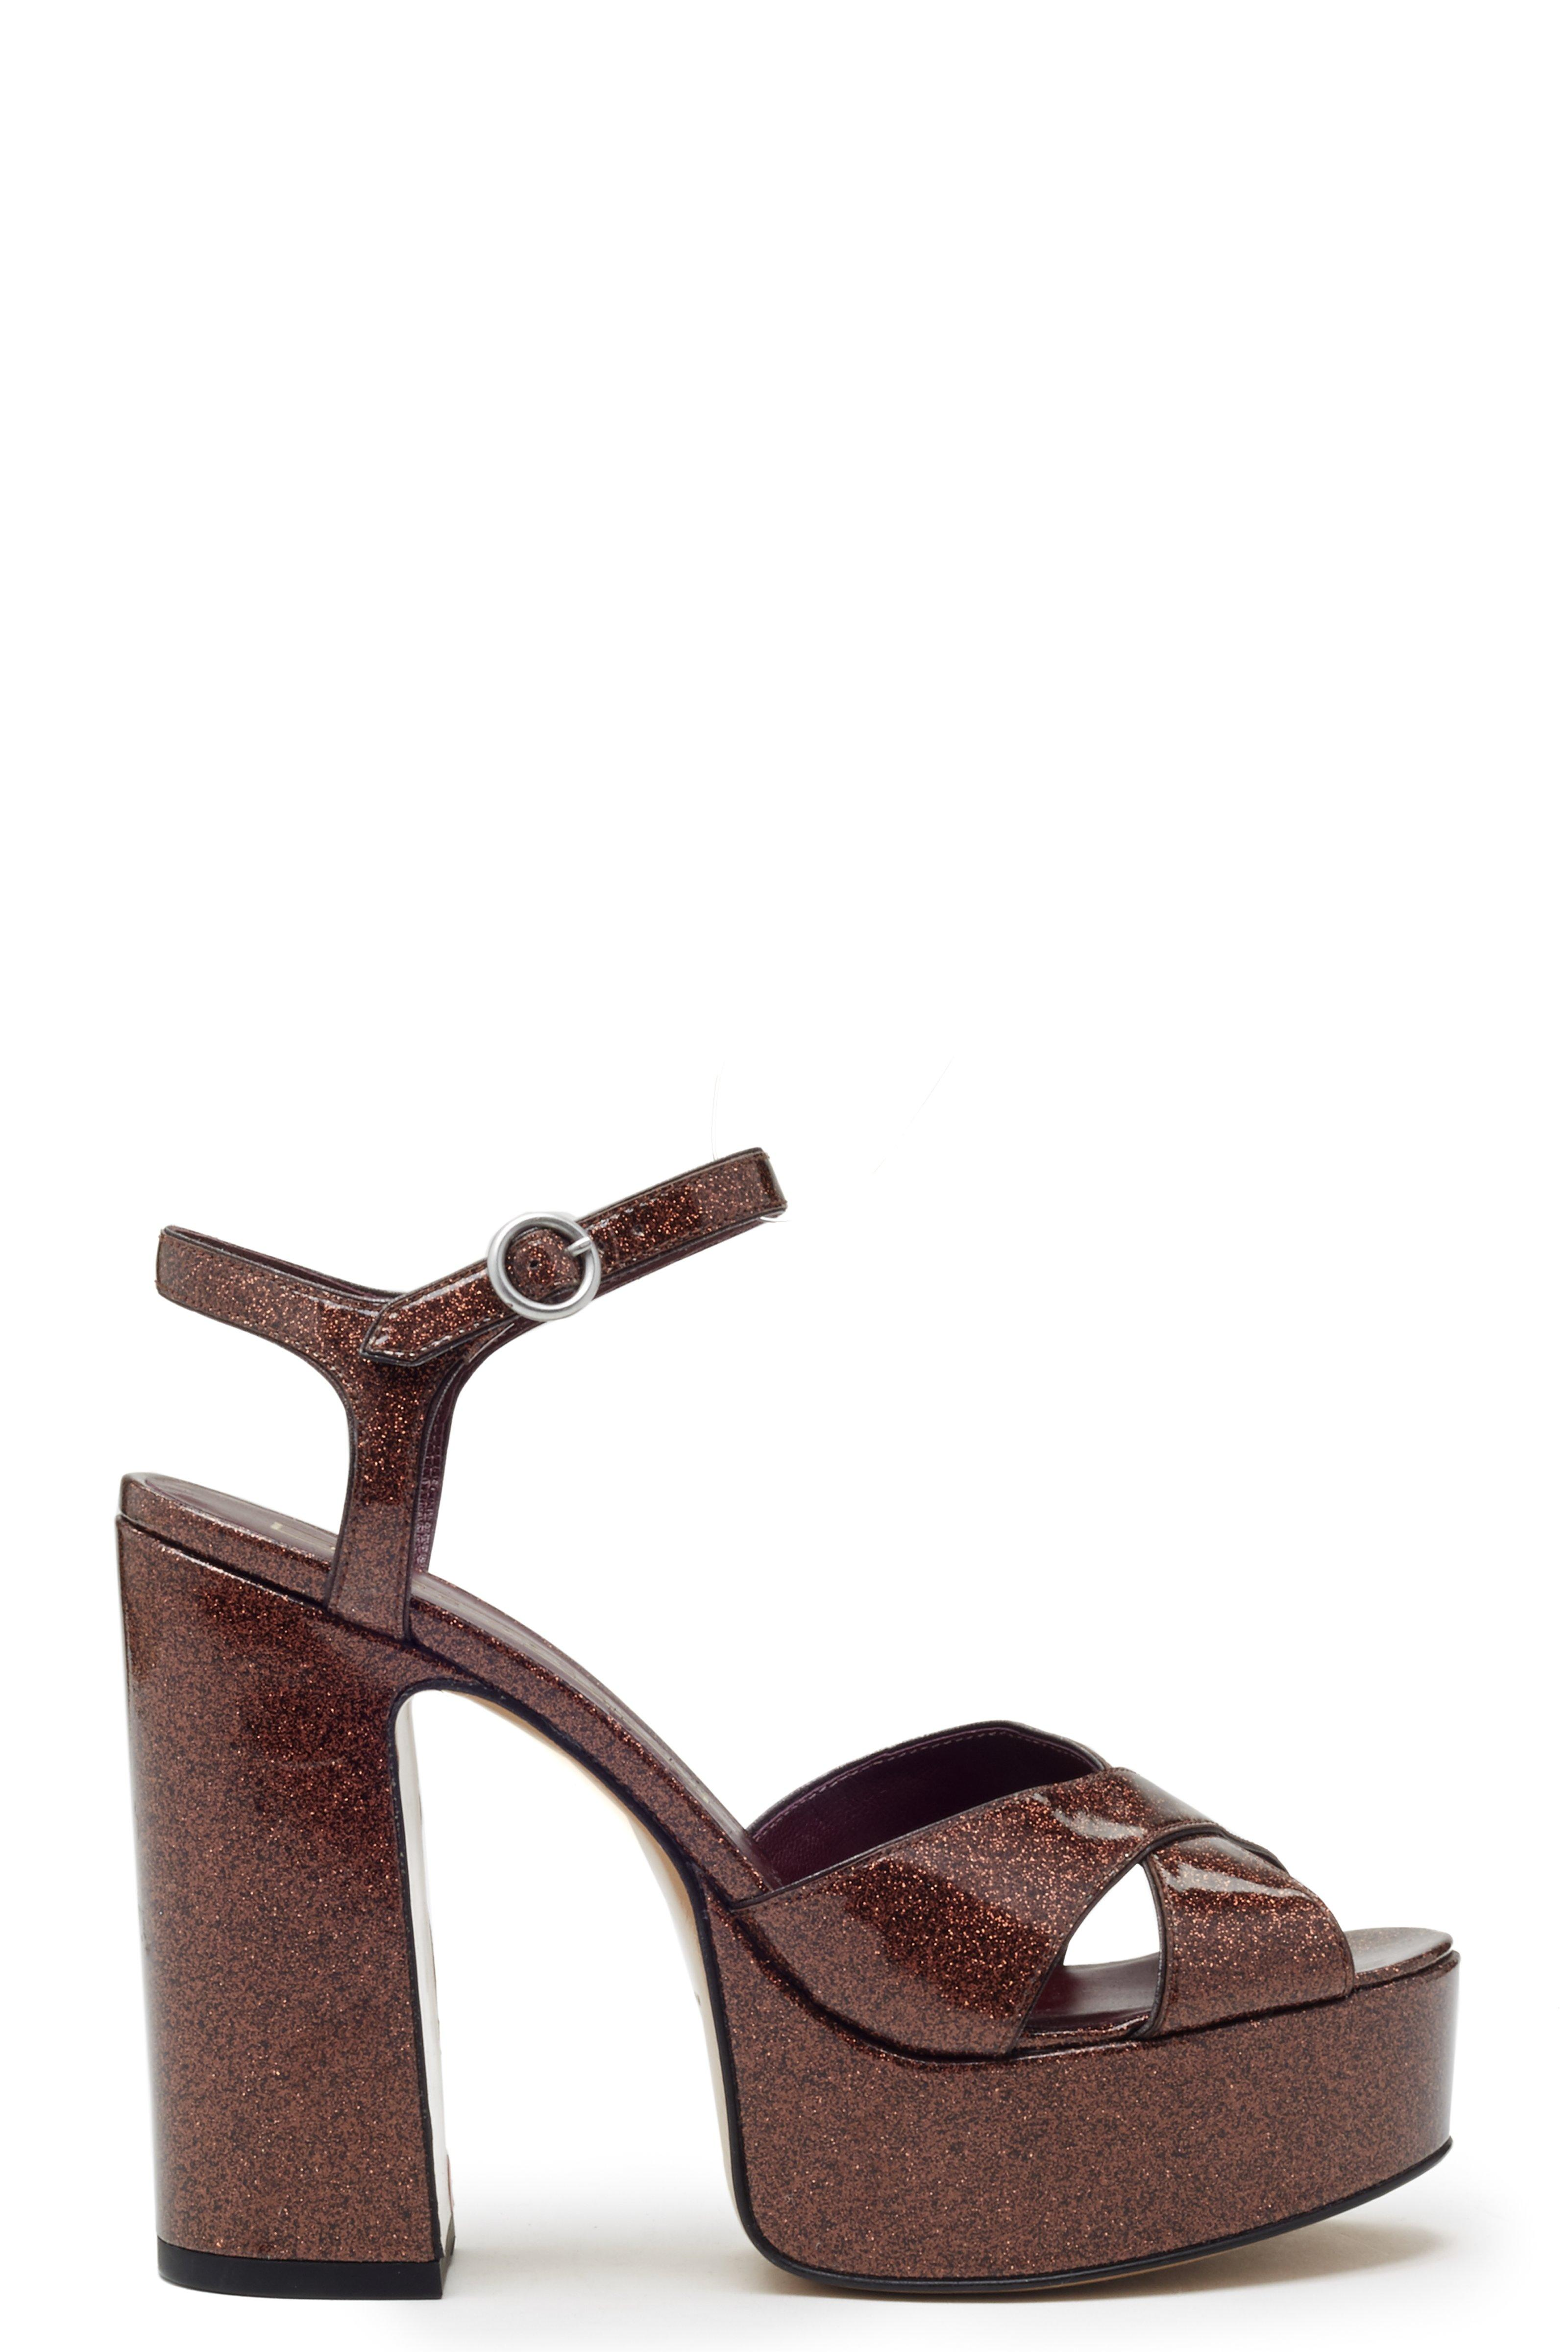 New Clearance Sast Marc Jacobs Leather Platform Sandals Outlet Professional Cheap Ebay Top Quality fjXfs9u